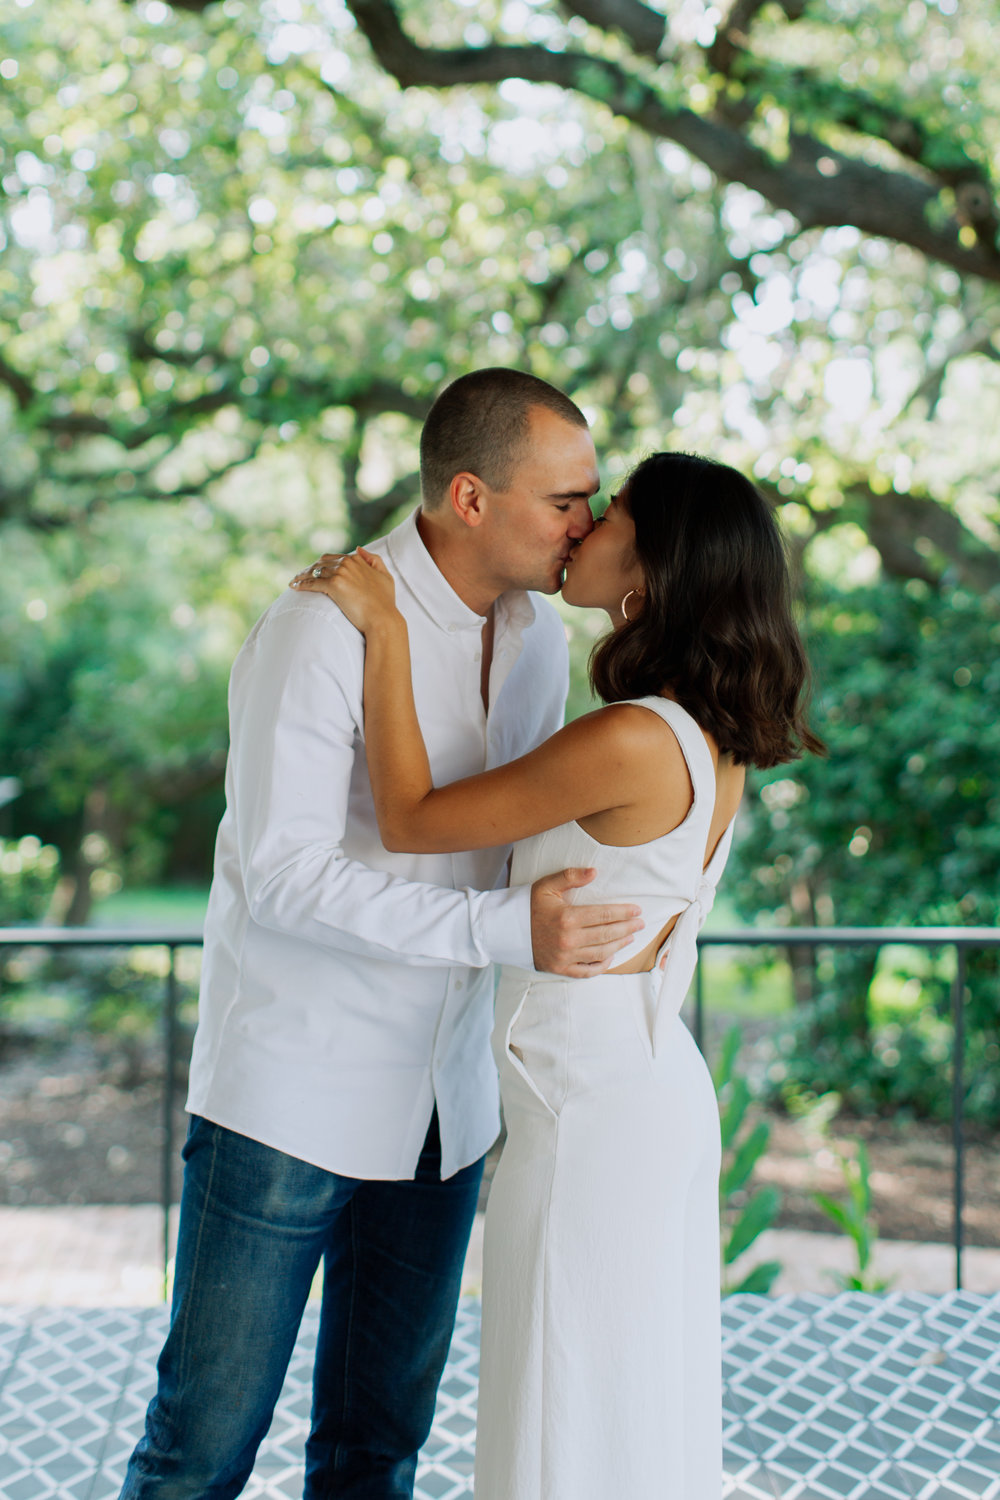 Paige-Newton-Photography-Engagement-Session-Austin-Manana-Coffee-Matties0014.jpg